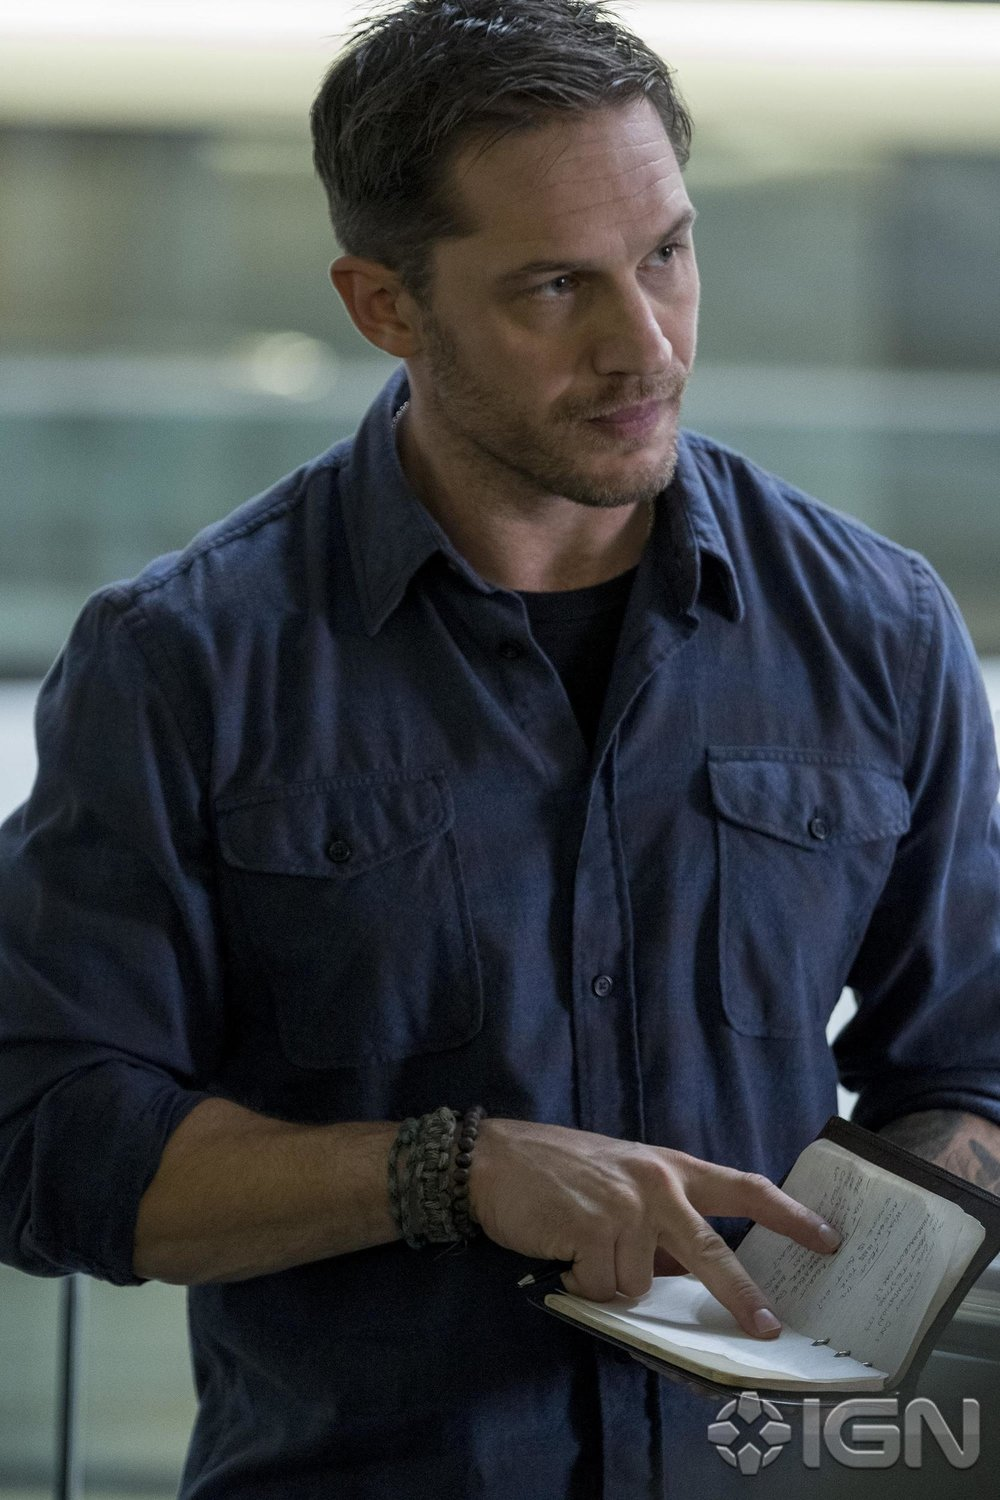 first-official-look-at-tom-hardy-as-eddie-brock-in-venom-and-the-movies-panel-video-from-brazil-comic-con1